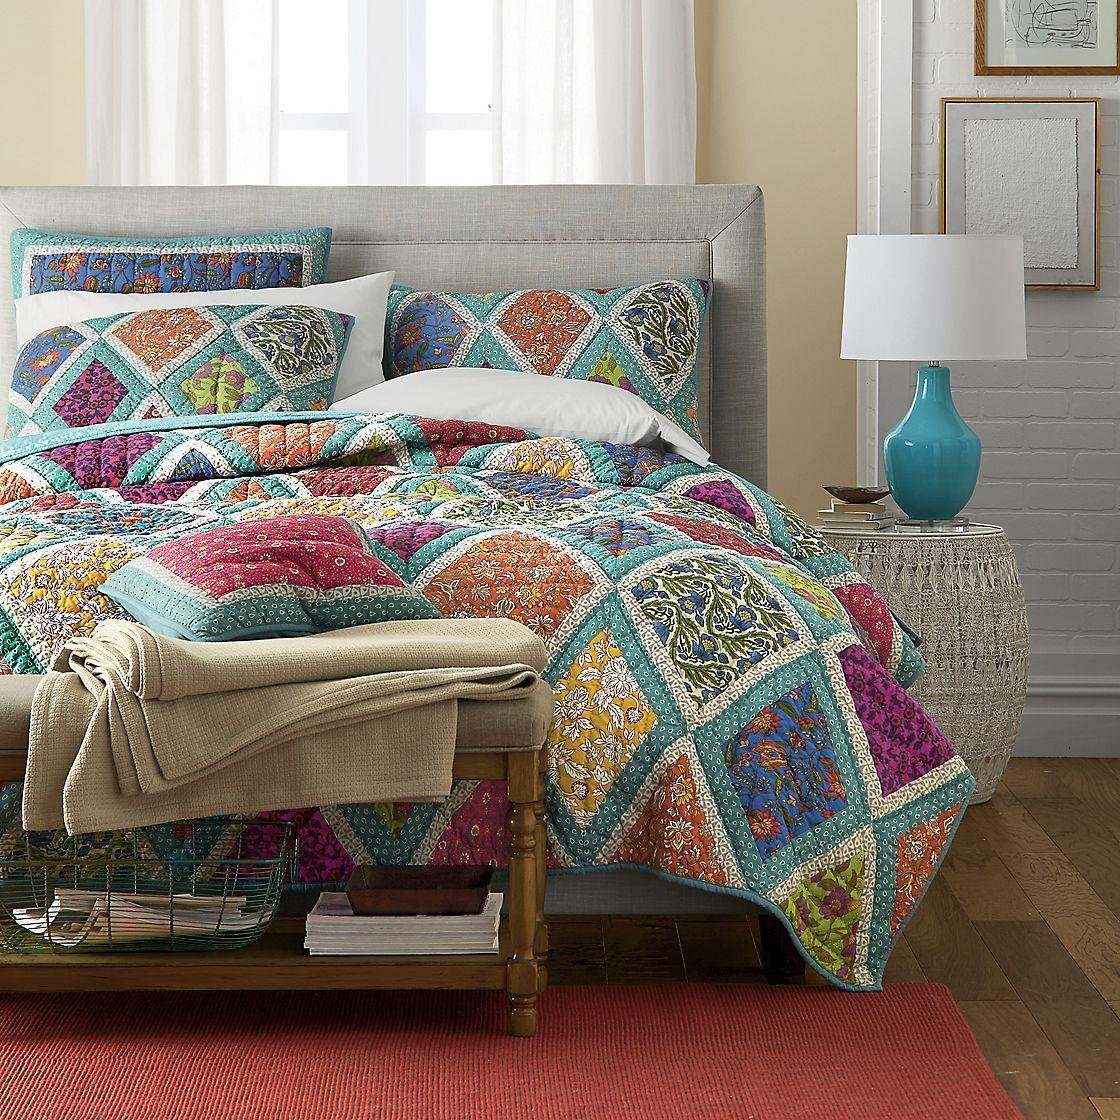 DaDa Bedding Collection Reversible Real Patchwork Cotton Fairy Forest Glade Floral Quilt Bedspread Set, Turquoise & Purple, King, 3-Pieces